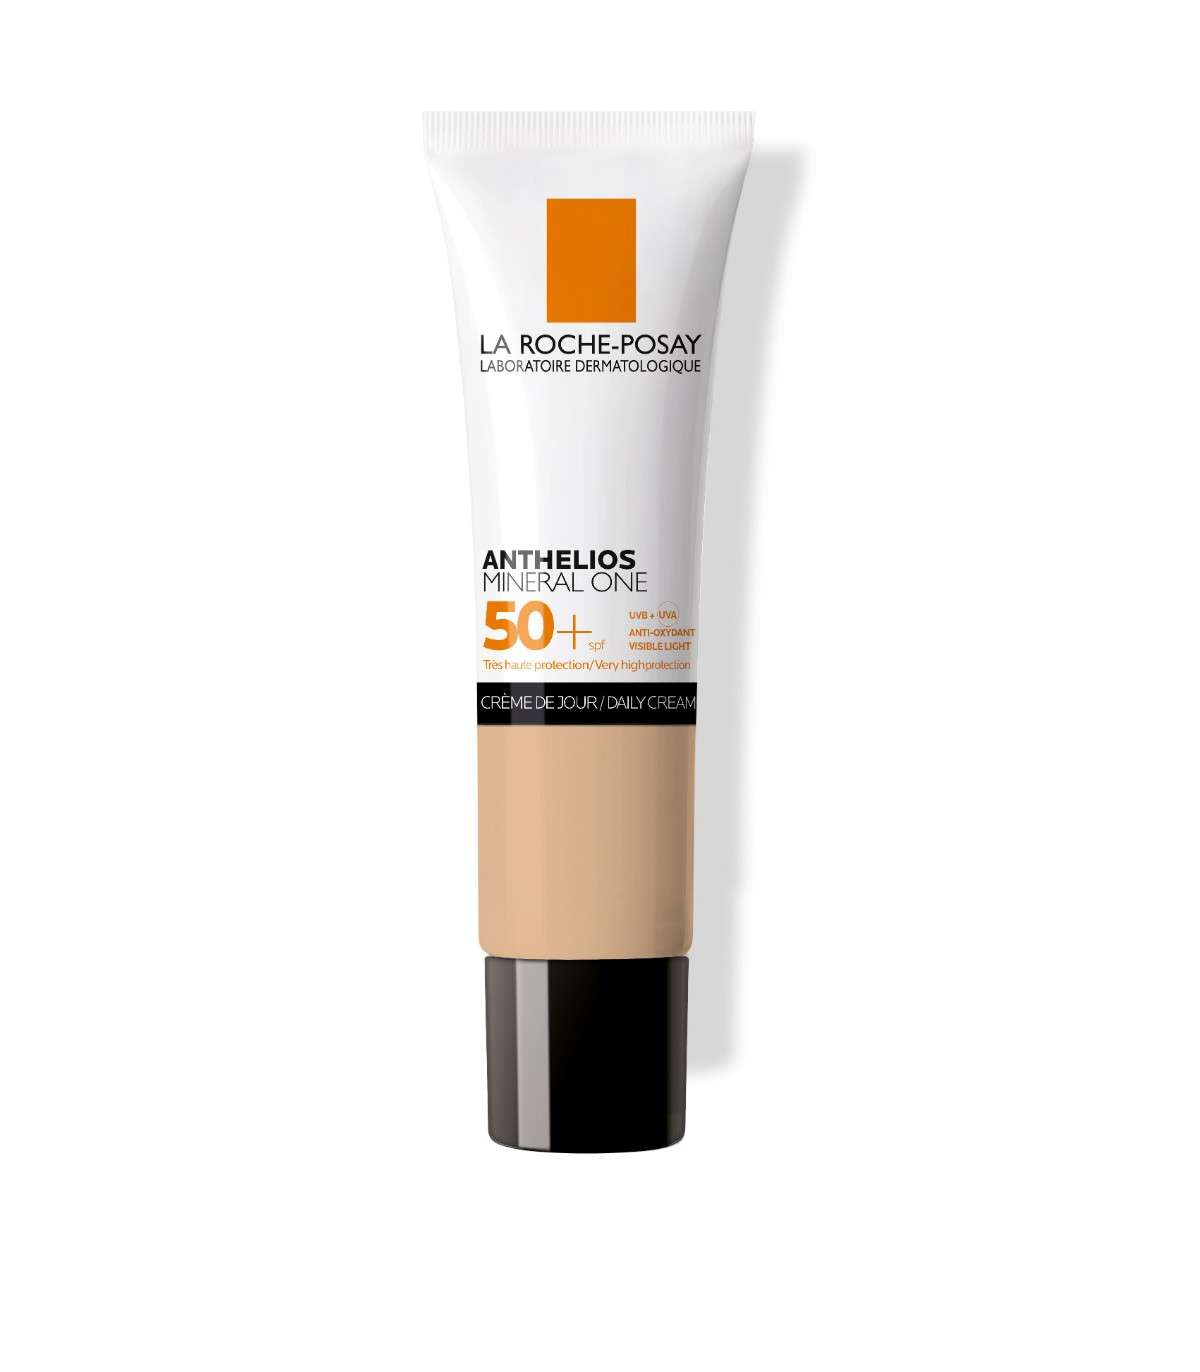 LA ROCHE-POSAY ANTHELIOS MINERAL ONE PROTEZIONE VISO SPF50+ T02 MEDIUM 30ML